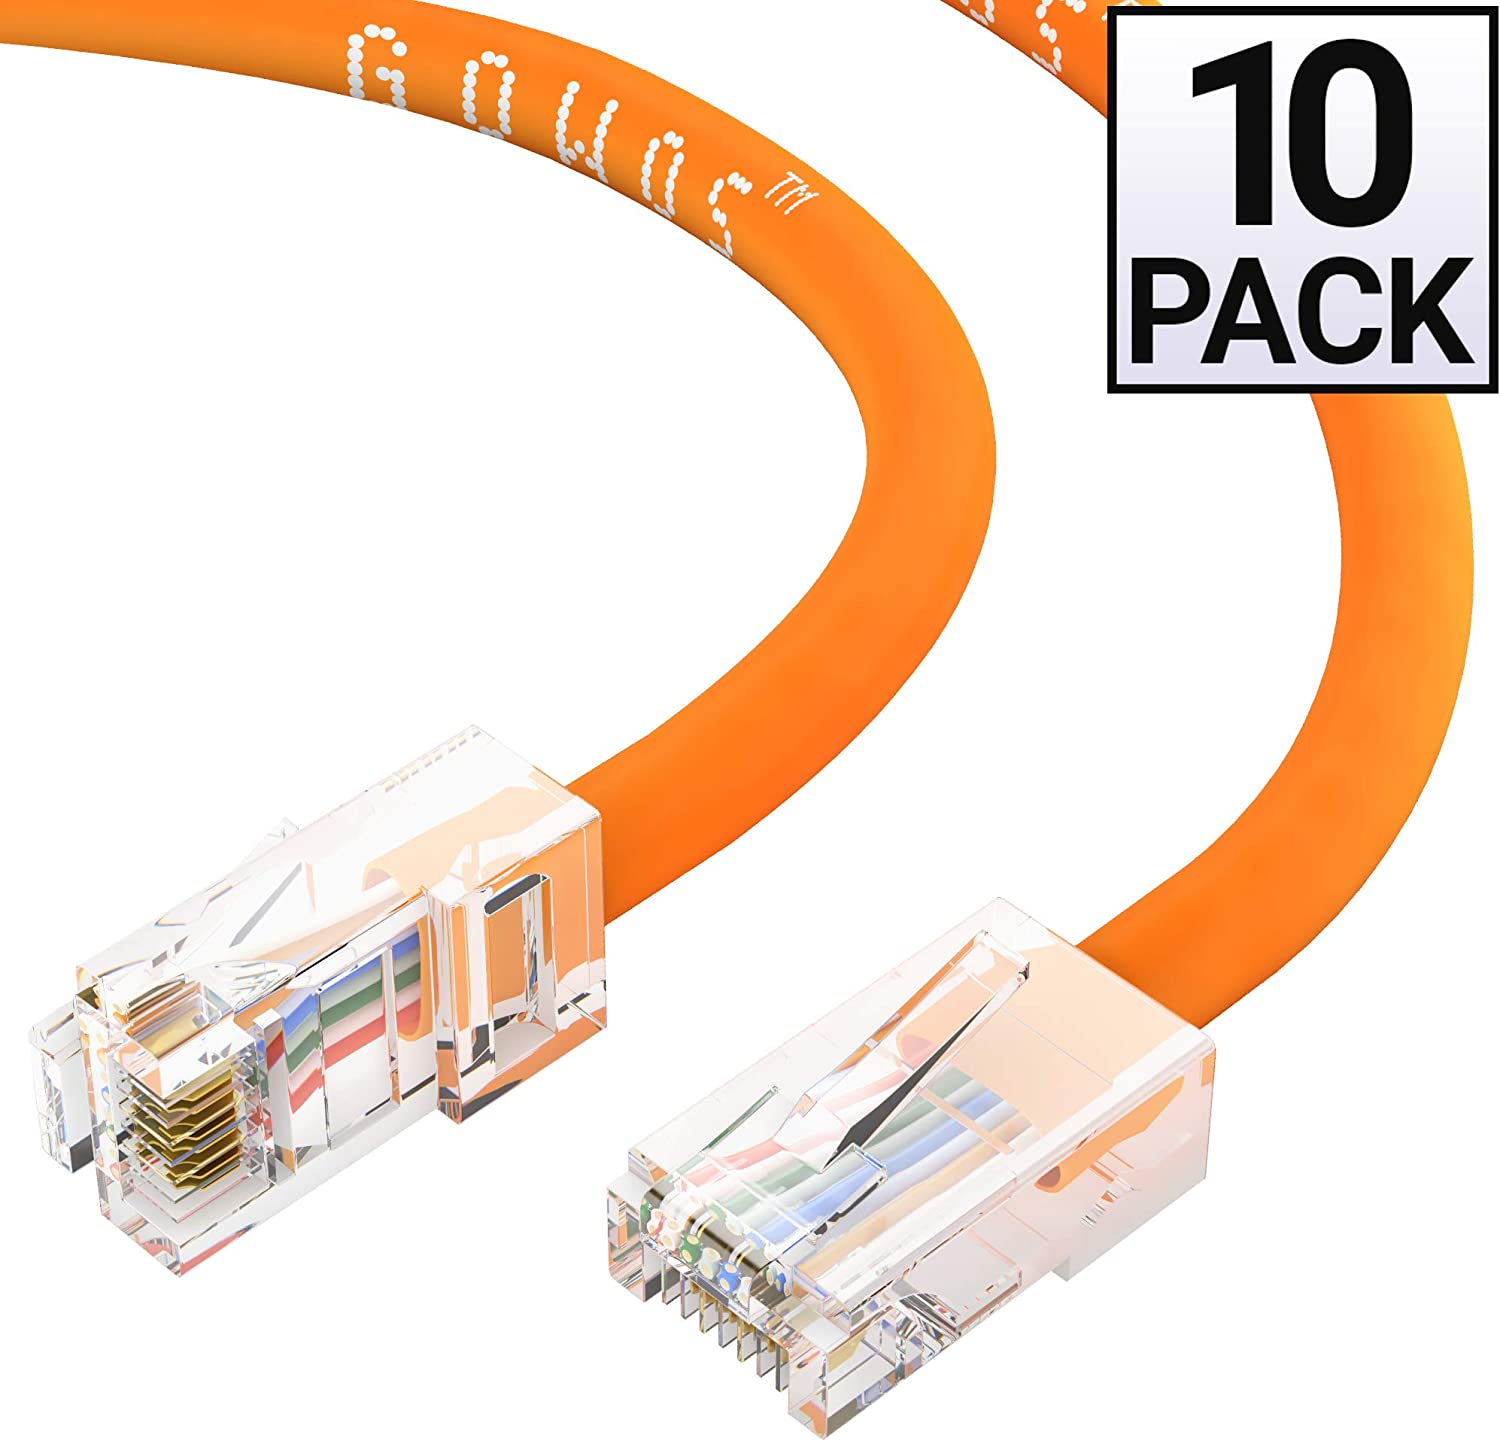 Available in 28 Lengths and 10 Colors Cat5e Ethernet Cable RJ45 10Gbps High Speed LAN Internet Patch Cord UTP Computer Network Cable with Bootless Connector 50 Feet - Gray GOWOS 10-Pack